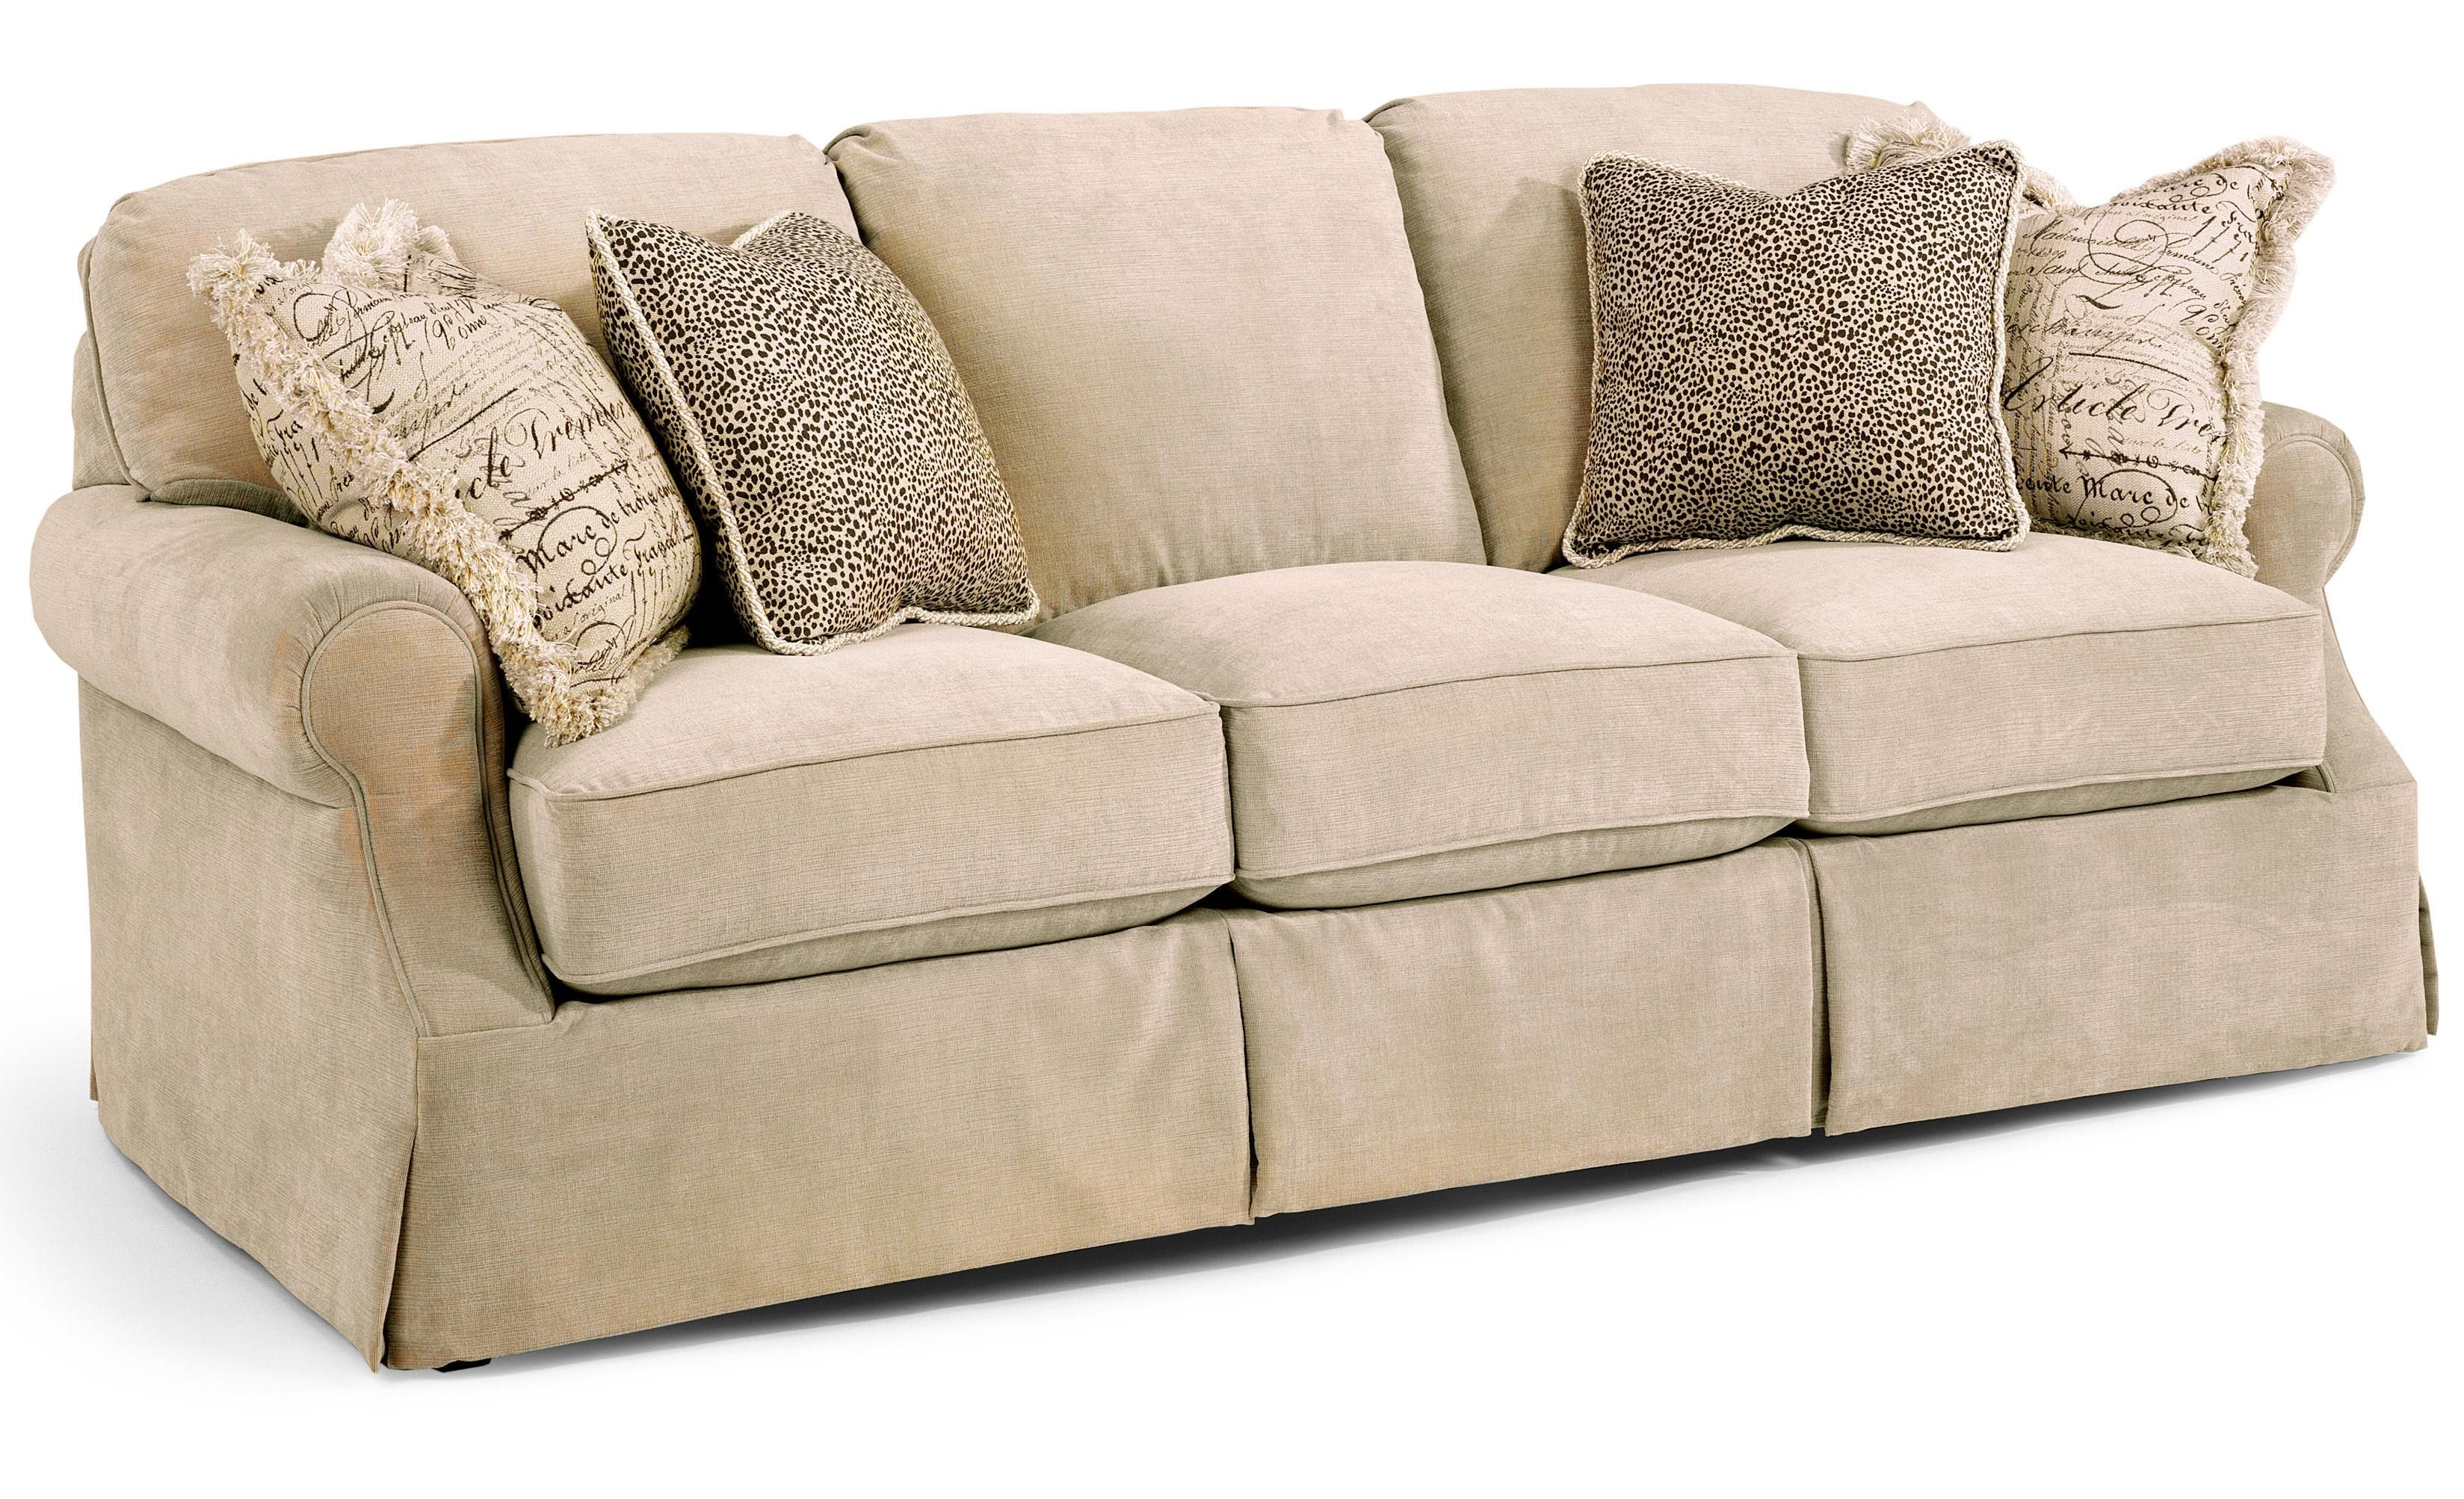 Garland Garland Sofa by Flexsteel changing it up